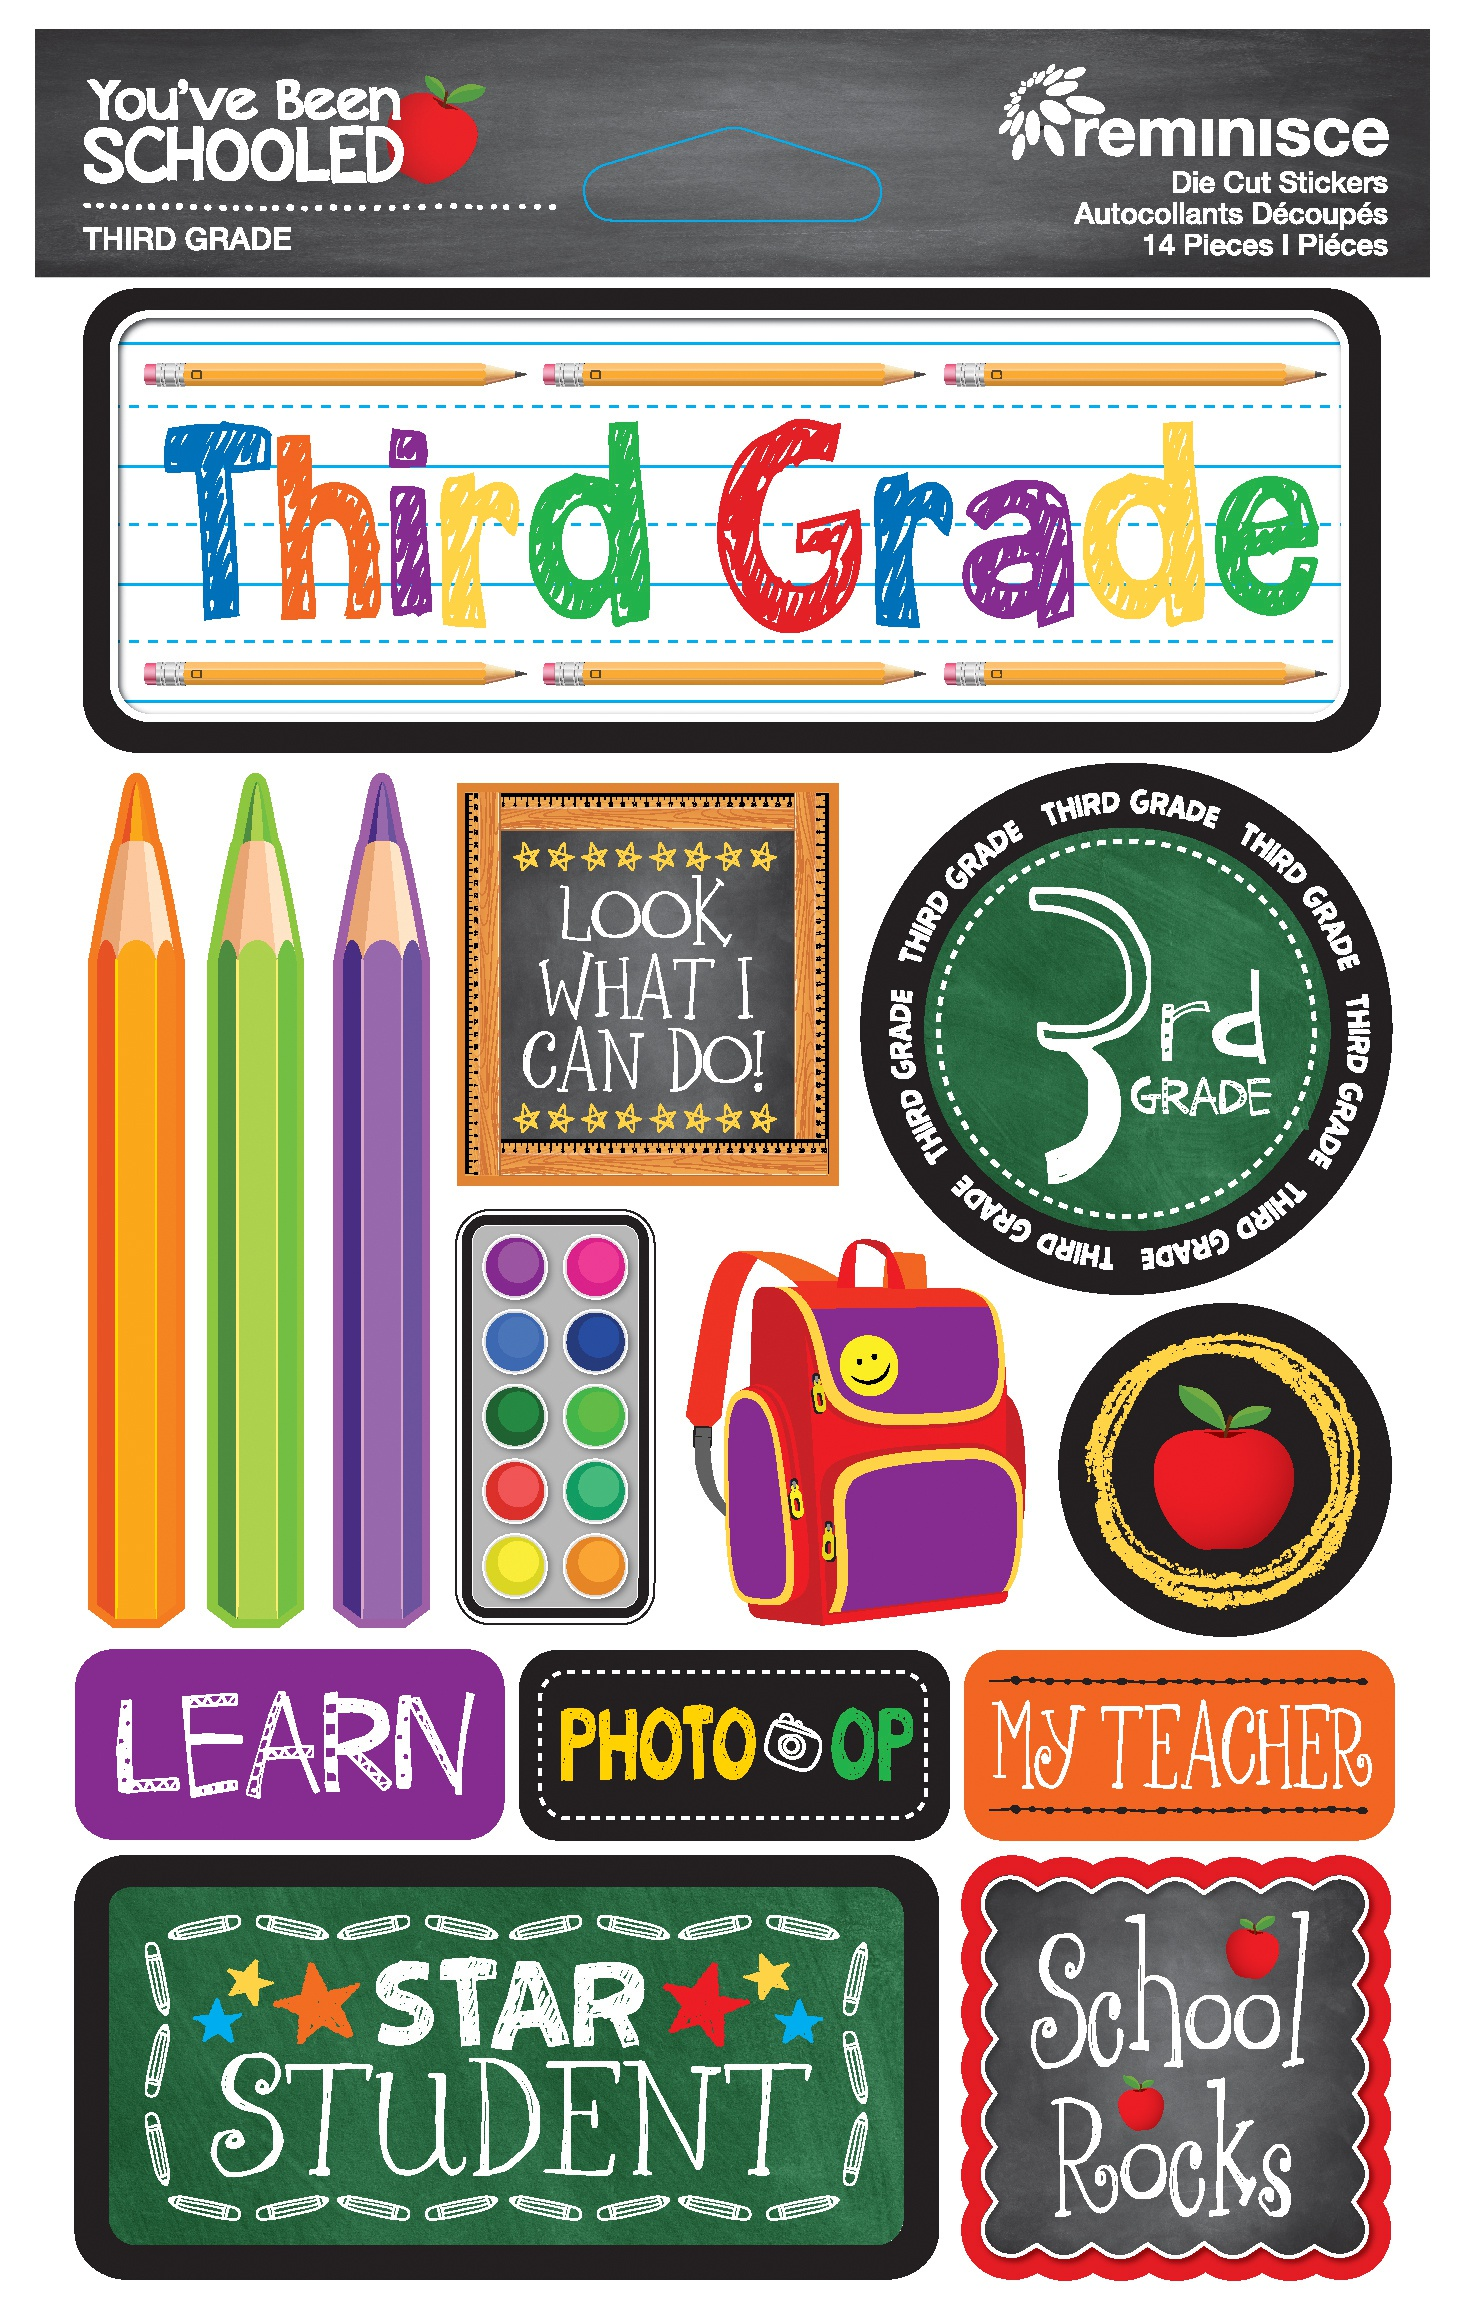 Reminisce You've Been Schooled -  3rd Grade 3D Dimensional Stickers